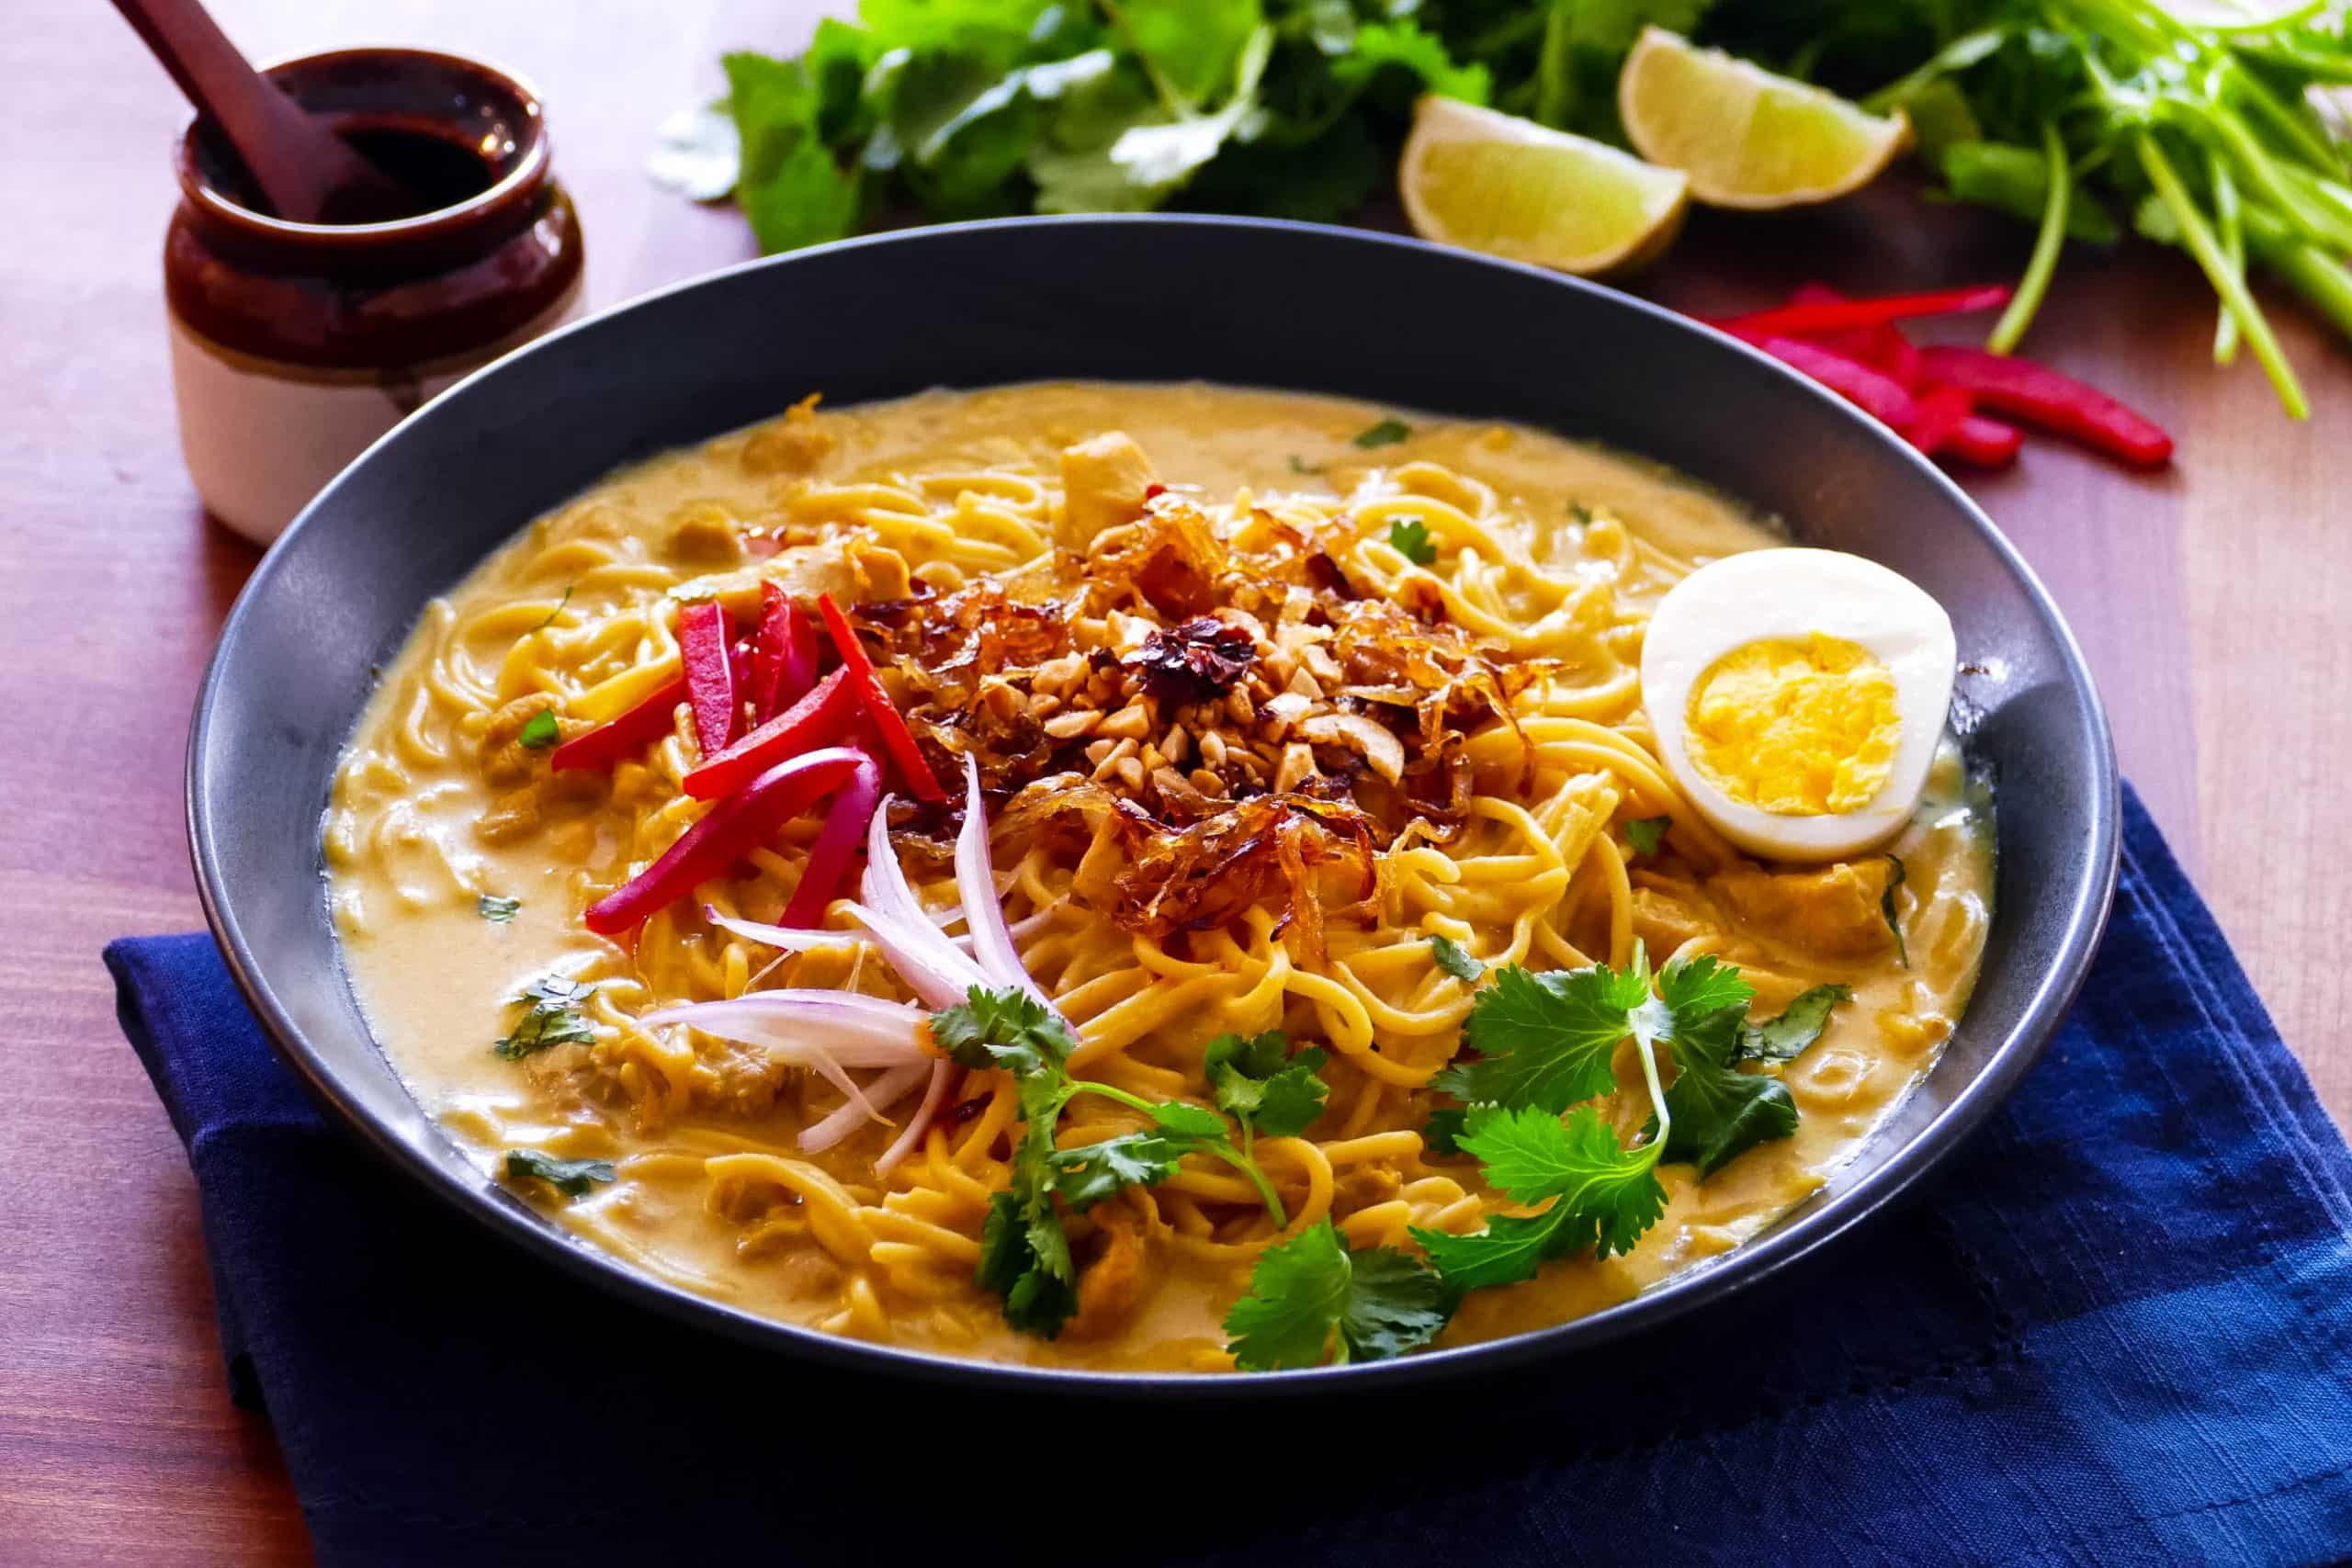 Instant Pot Khao Suey - Burmese noodles in coconut curry broth topped with fried onions, garlic, boiled egg and cilantro